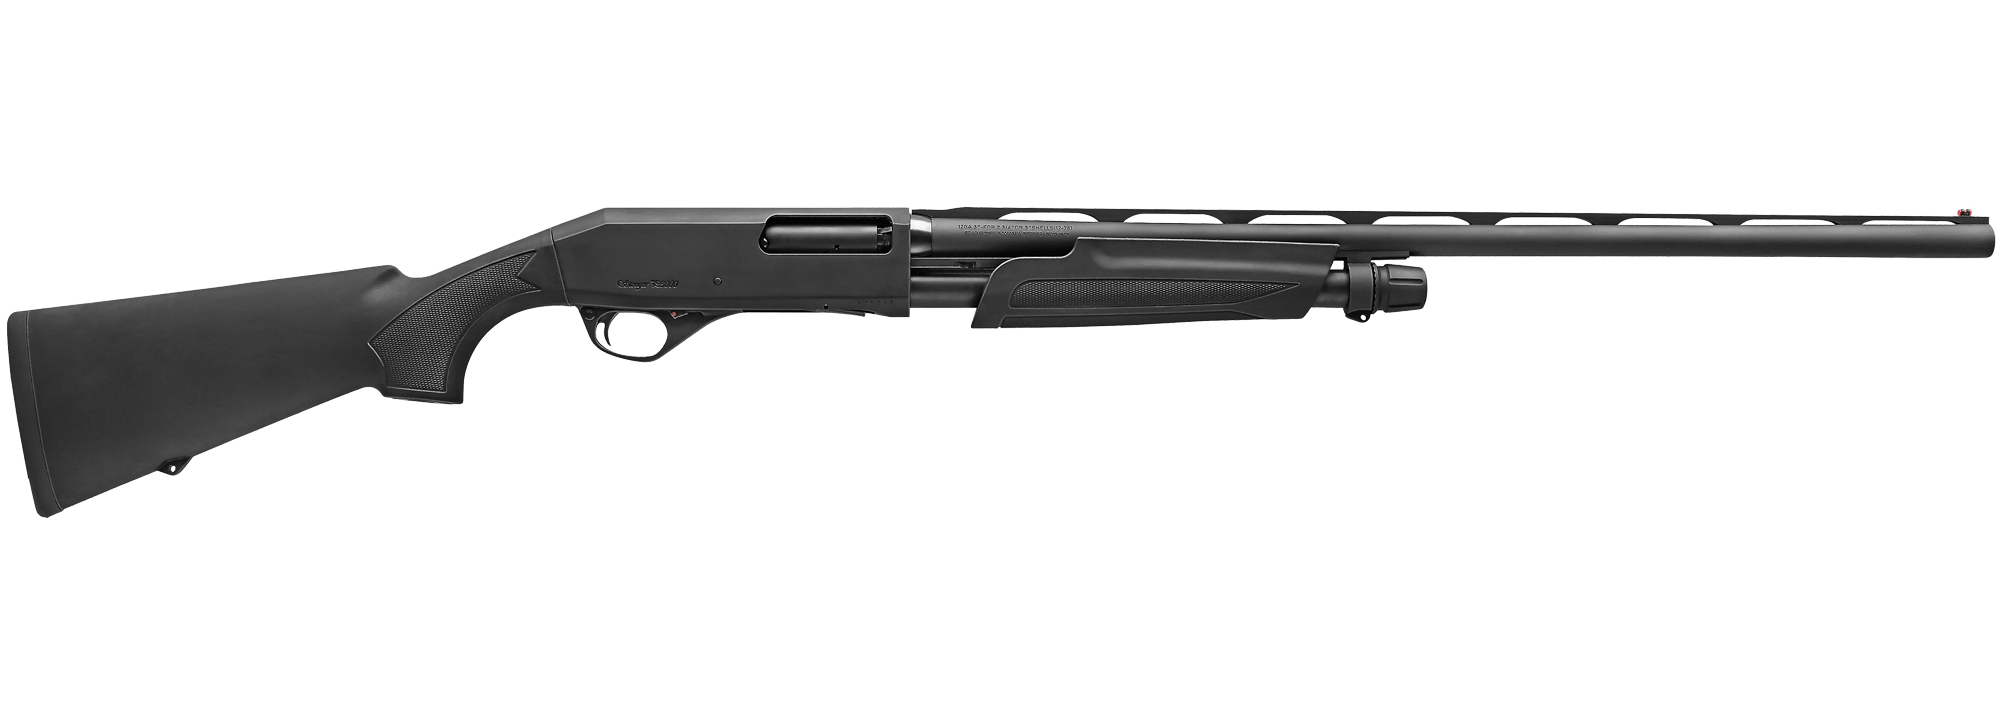 STOEGER P3000 Image